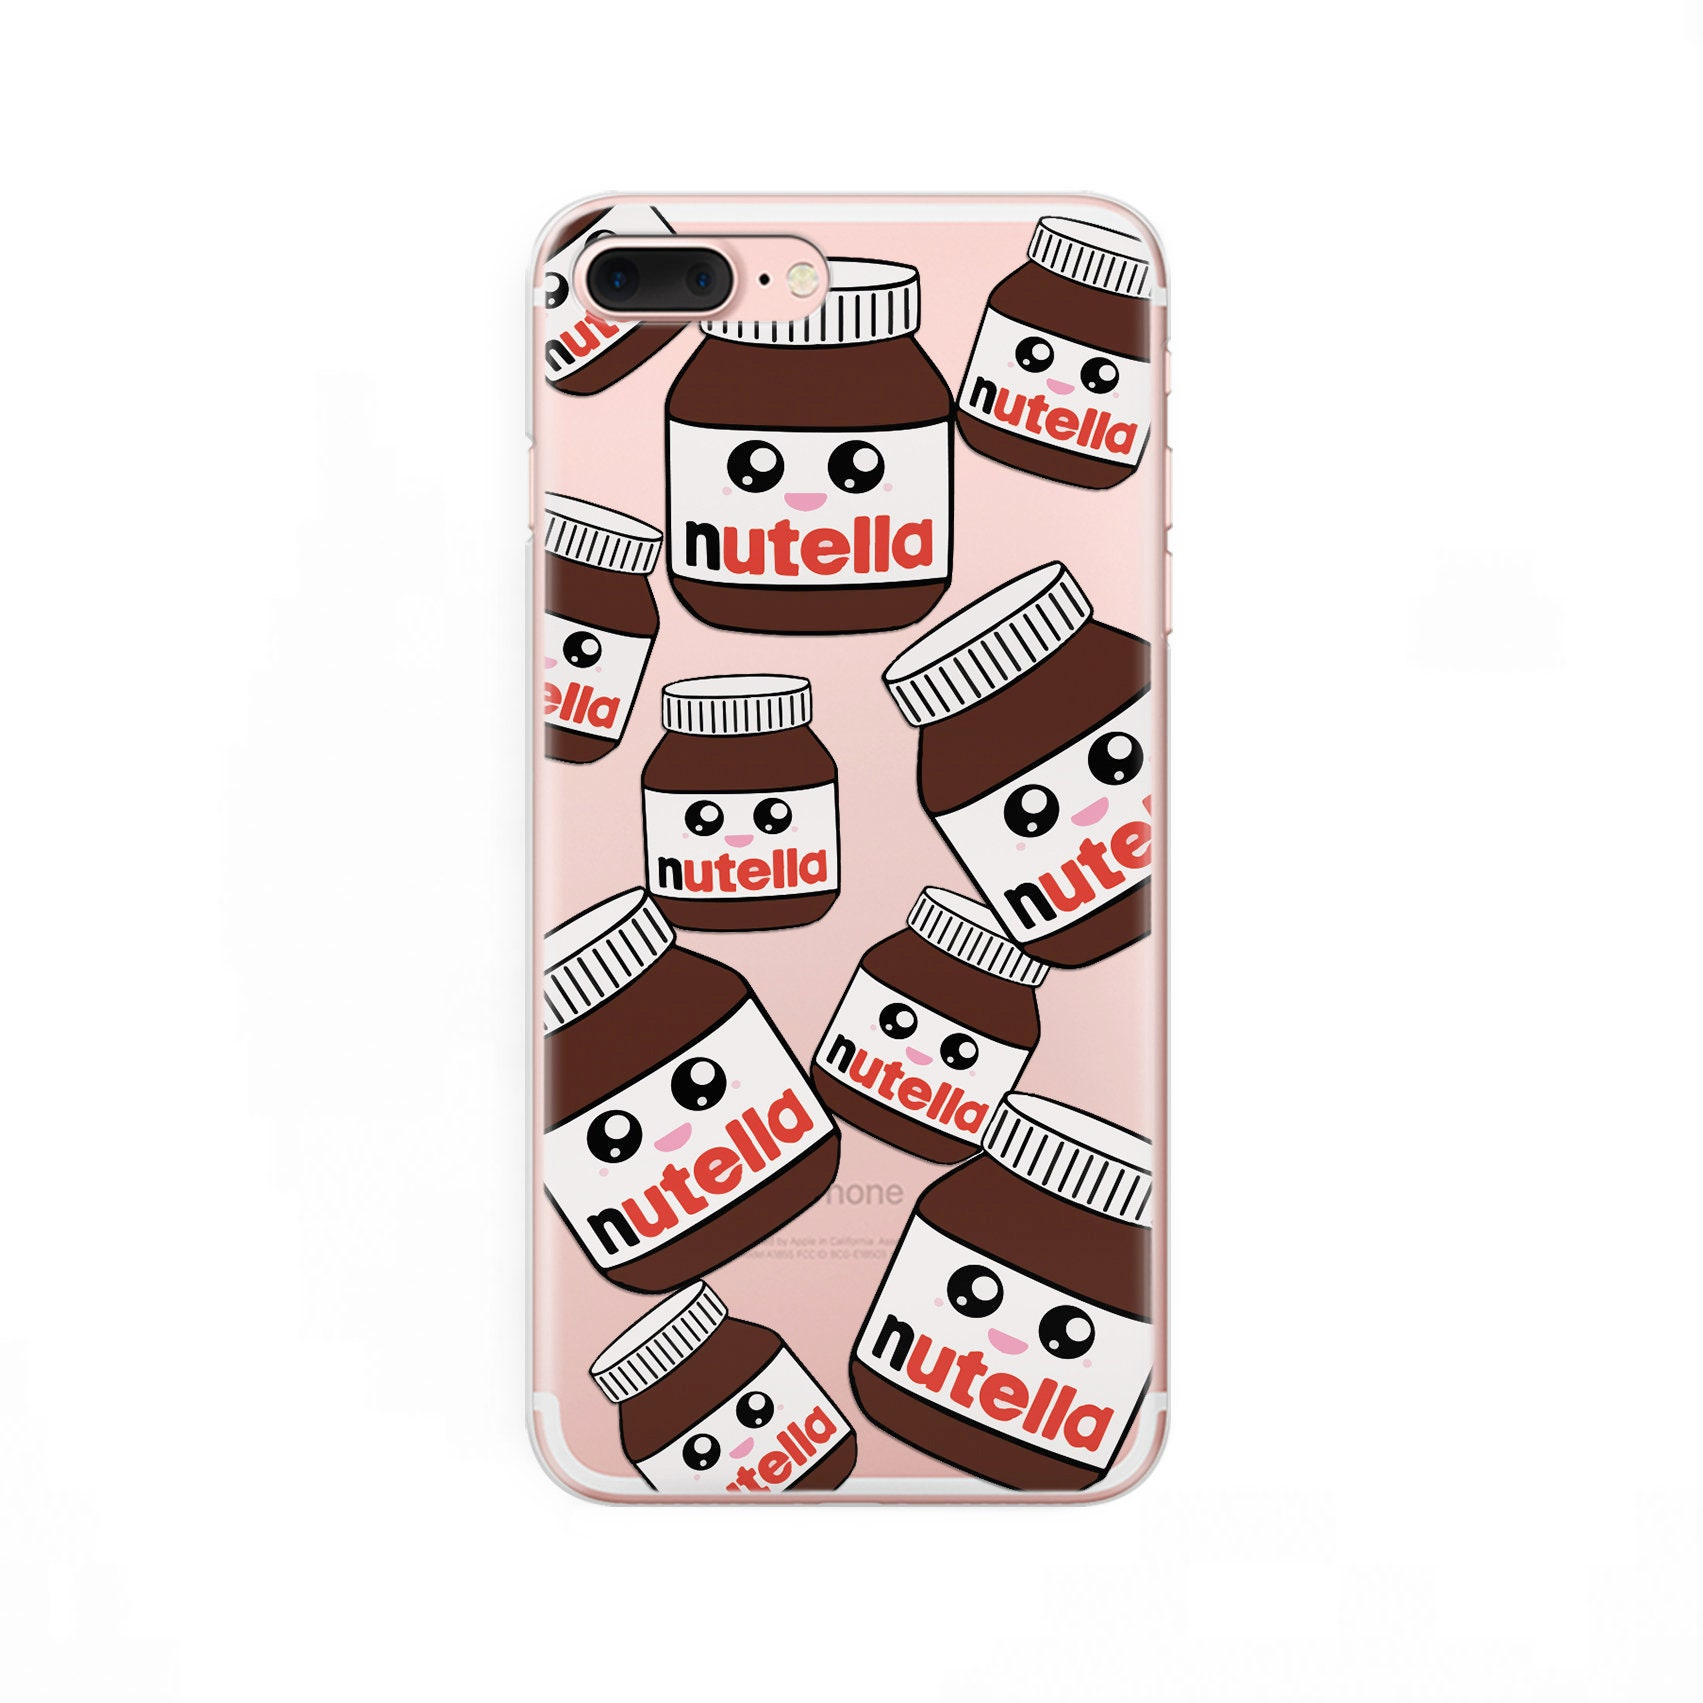 Samsung Galaxy S9 iPhone XS Max Case iPhone 7 Case iPhone XR Case iPhone 8  Case iPhone X Case Nutella iPhone XS Case iPhone 7 Plus Case